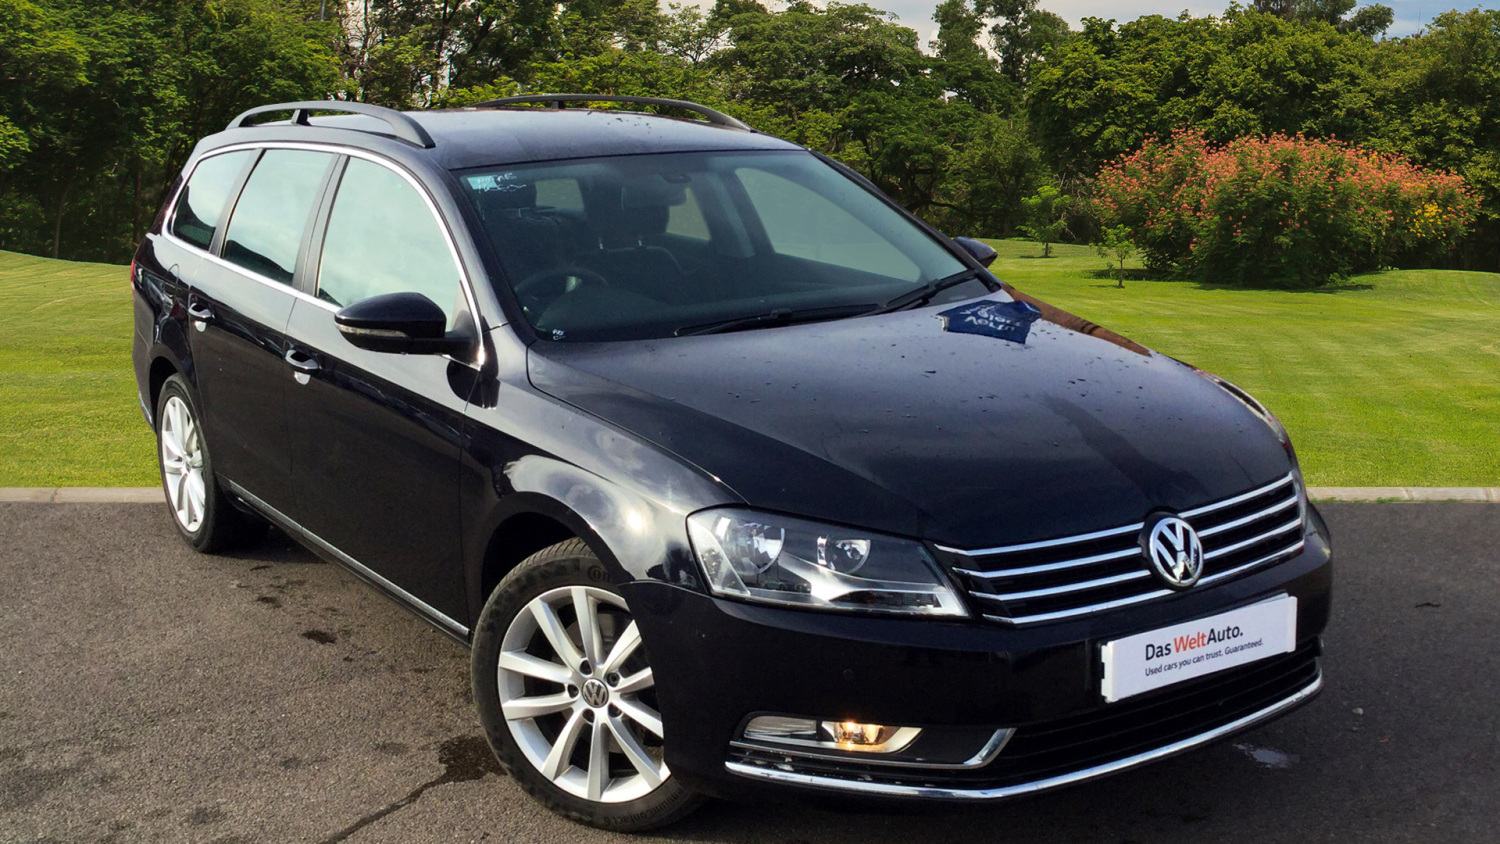 used volkswagen passat 2 0 tdi bluemotion tech executive 5dr dsg diesel estate for sale vertu. Black Bedroom Furniture Sets. Home Design Ideas